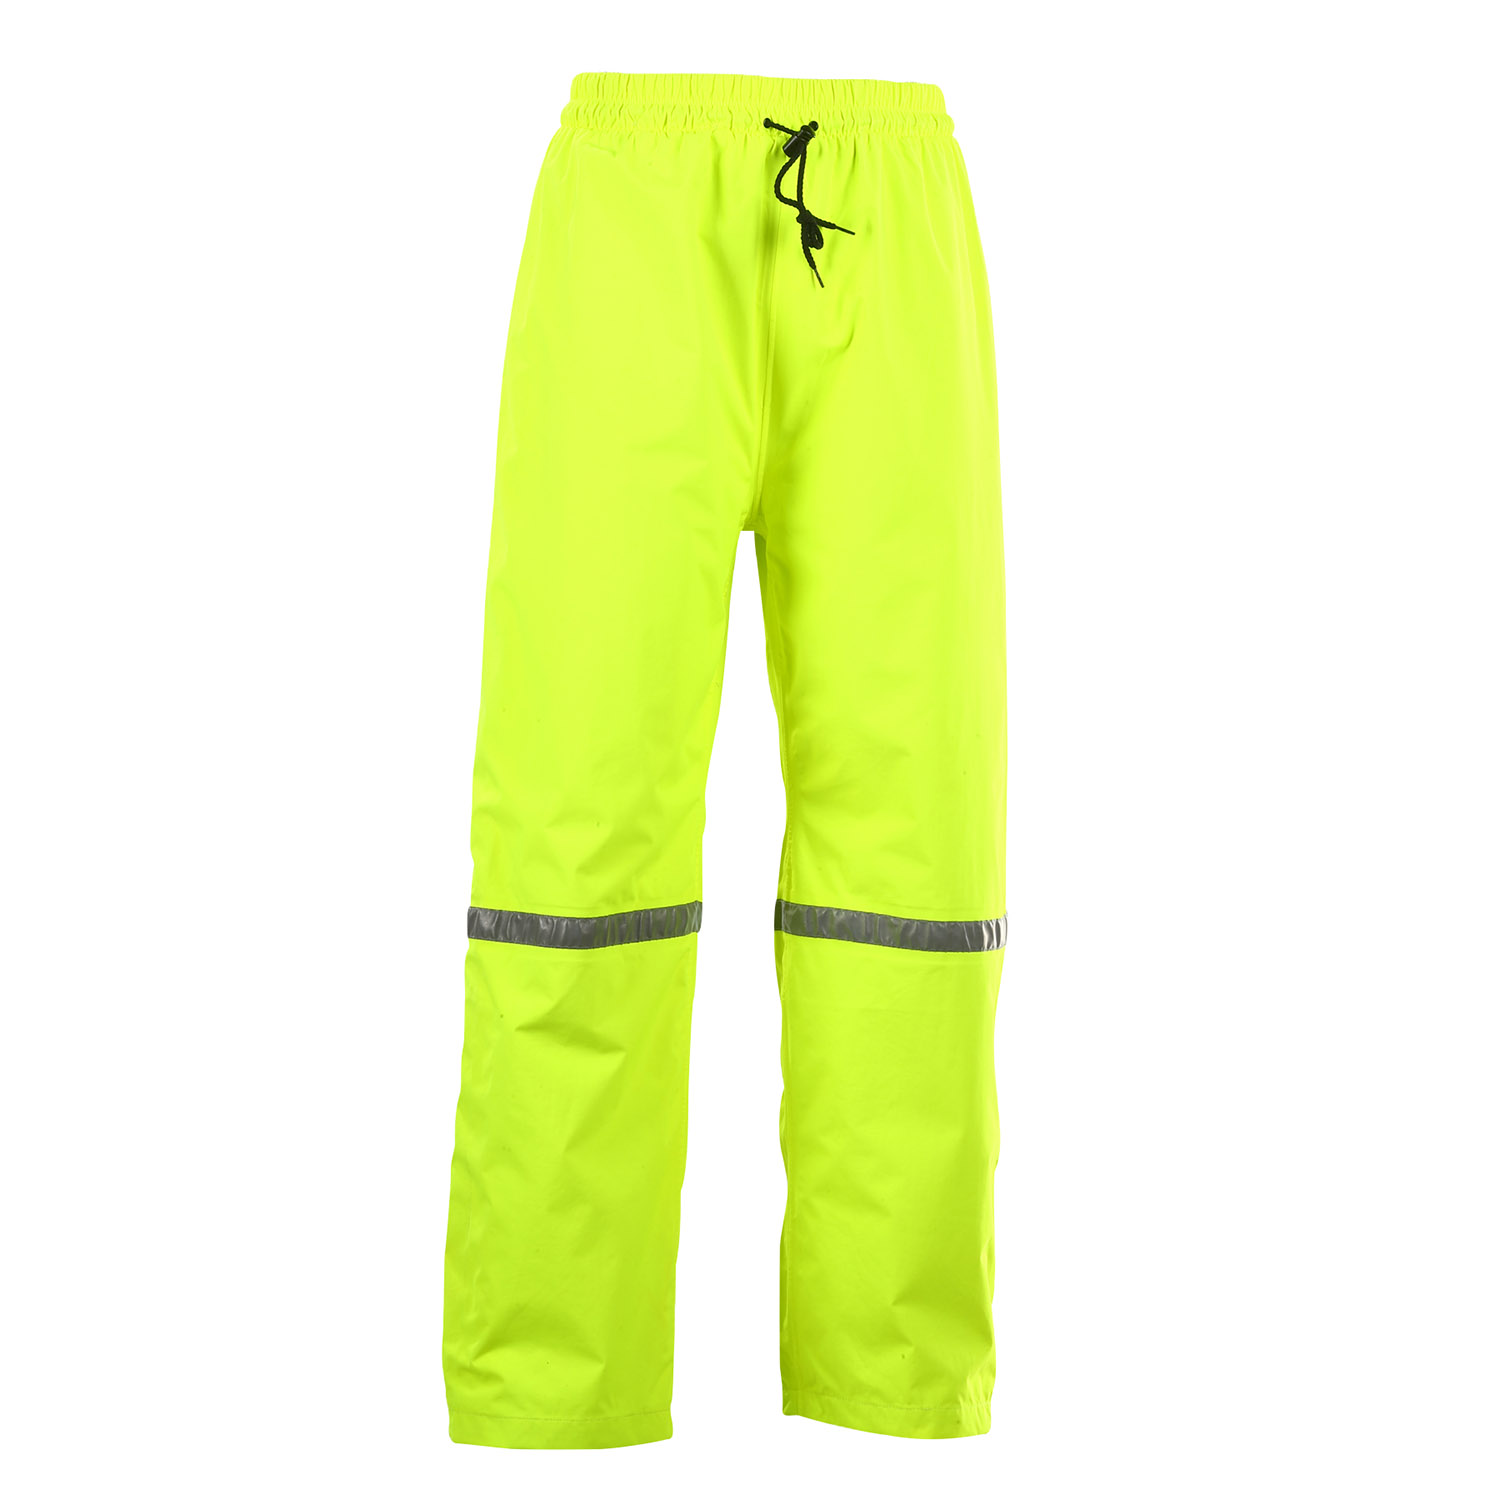 SOLAR-1 Waterproof and Breathable Rain Pants